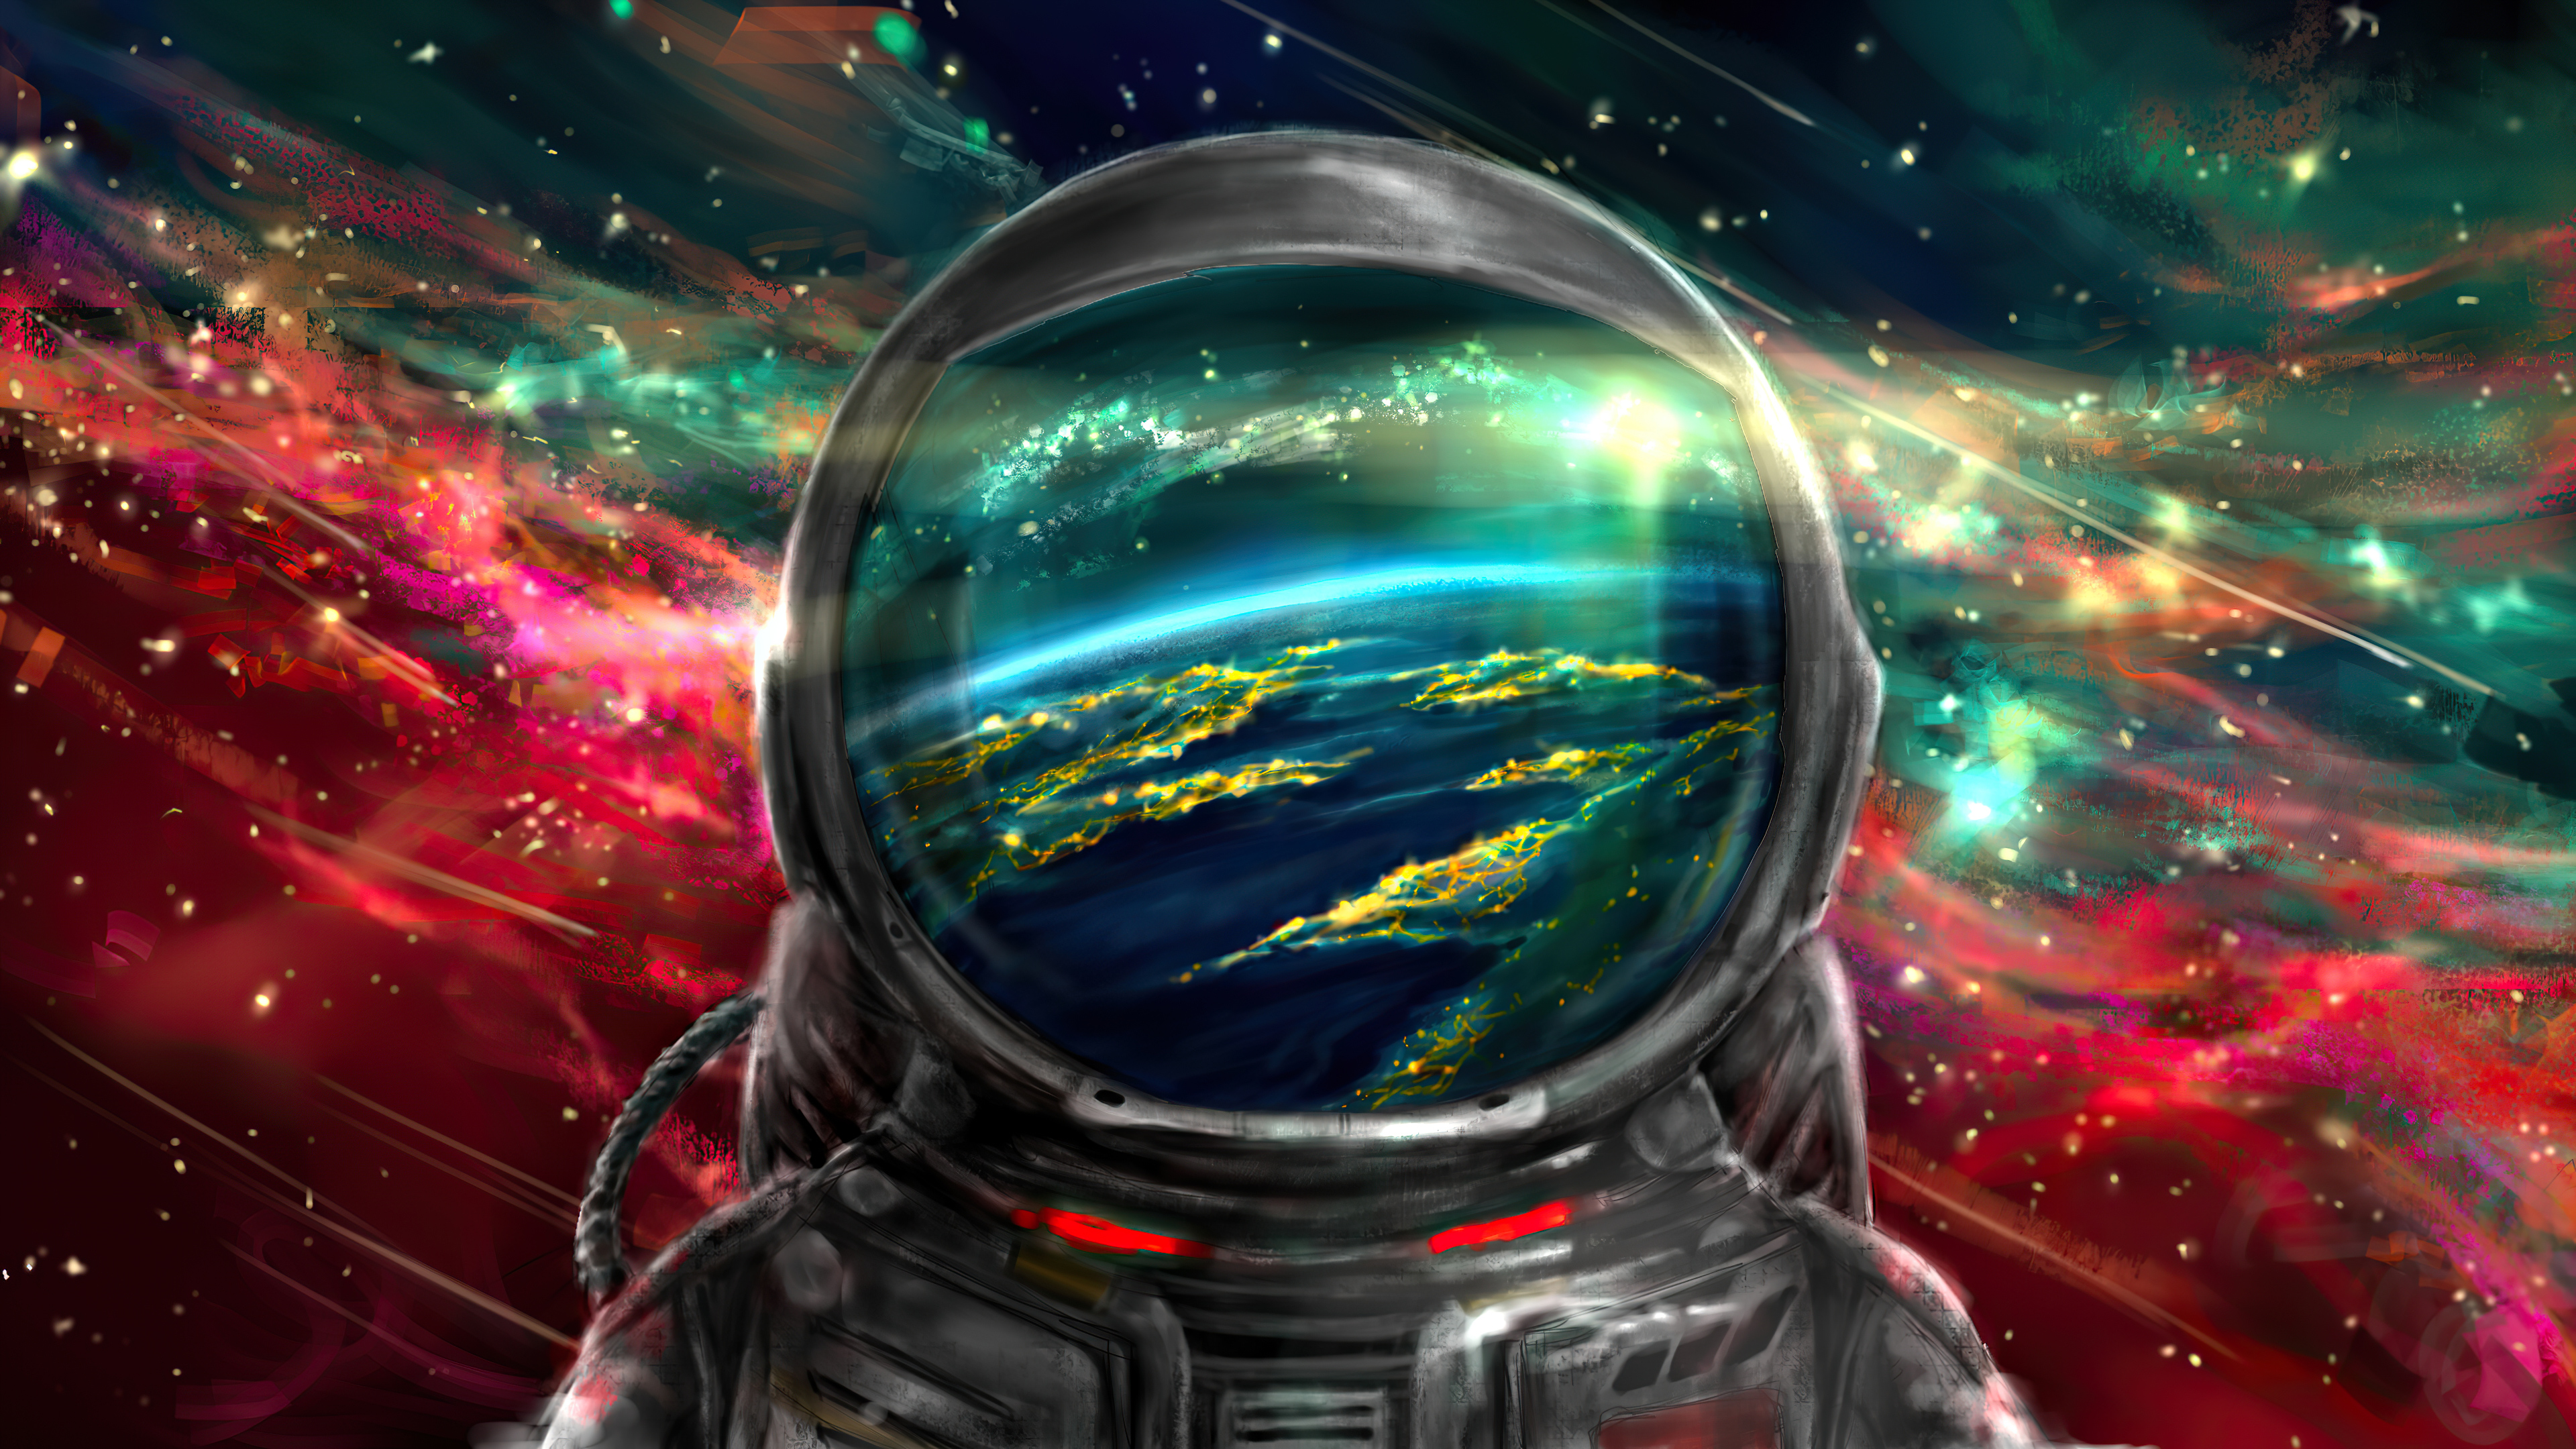 Astronaut Colorful Galaxy 4k Hd Artist 4k Wallpapers Images Backgrounds Photos And Pictures